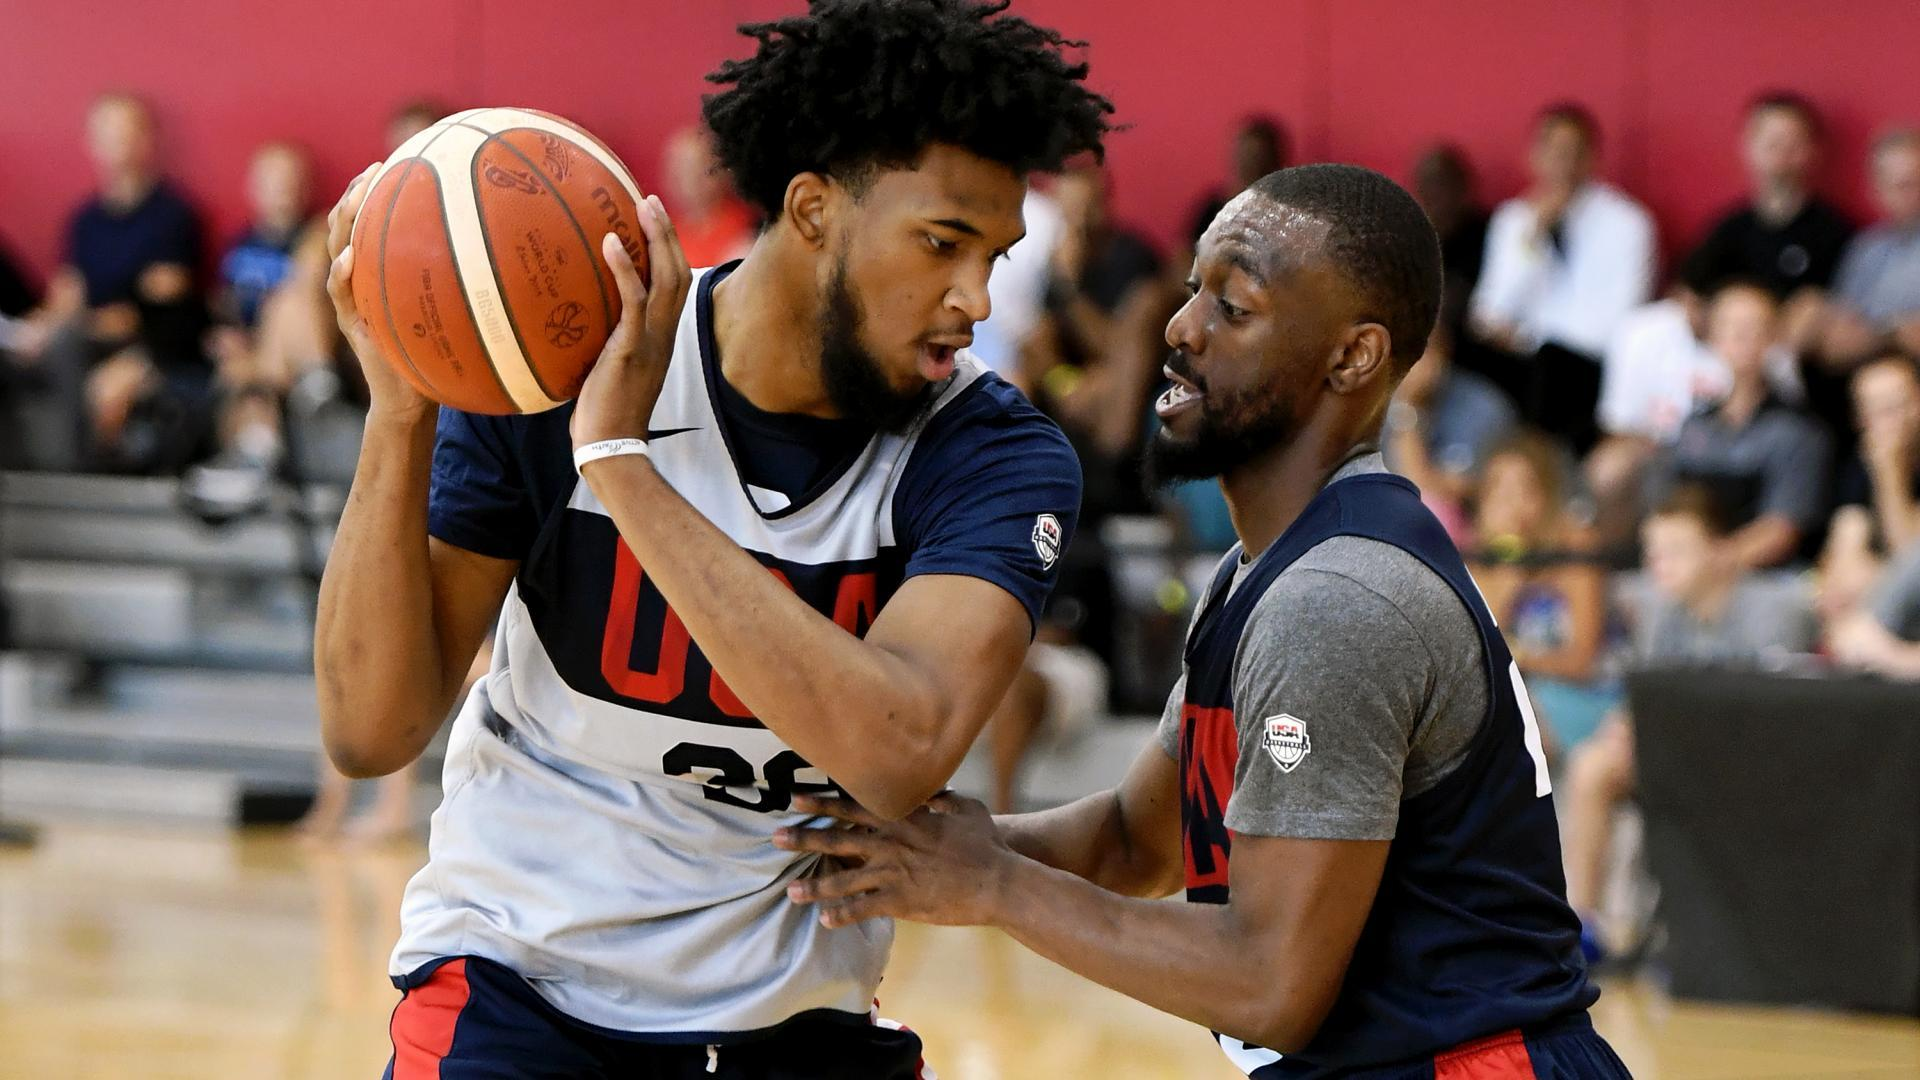 Team USA struggles against Select Team in scrimmages ahead of FIBA World Cup